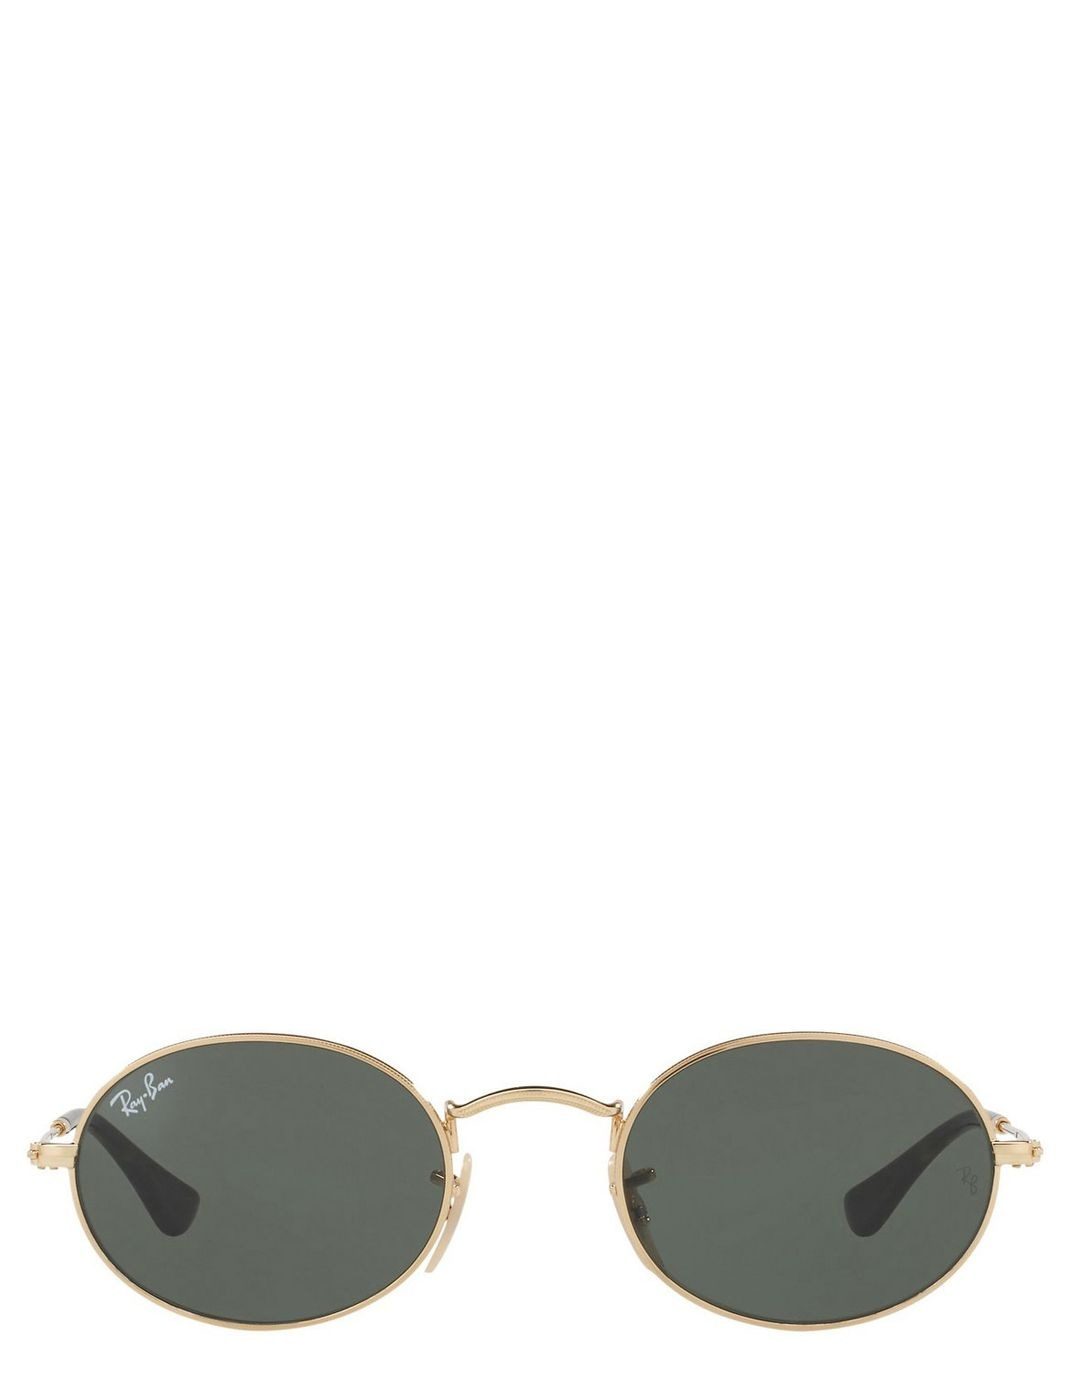 92c73bd590512 canada ray ban sunglasses accessories f3469 5f2c1  norway ray ban rb3547n  396698 sunglasses myer online 1f687 4a496